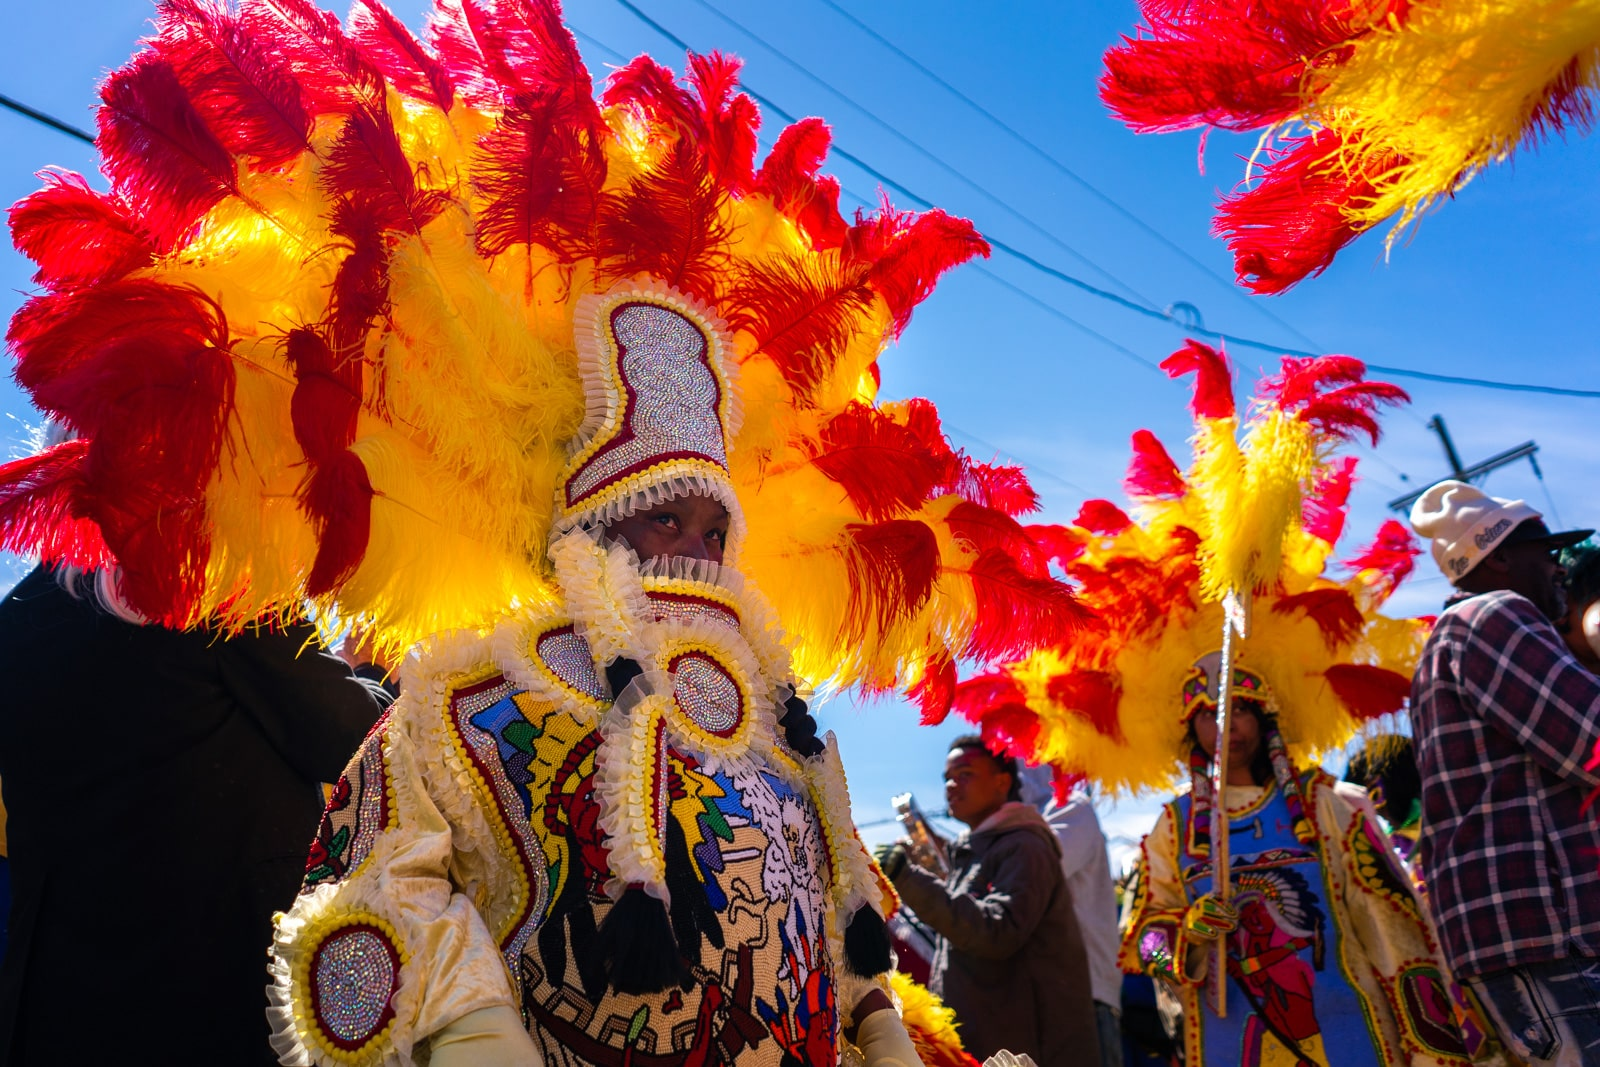 Mardi Gras Indians walking in New Orleans on Mardi Gras day